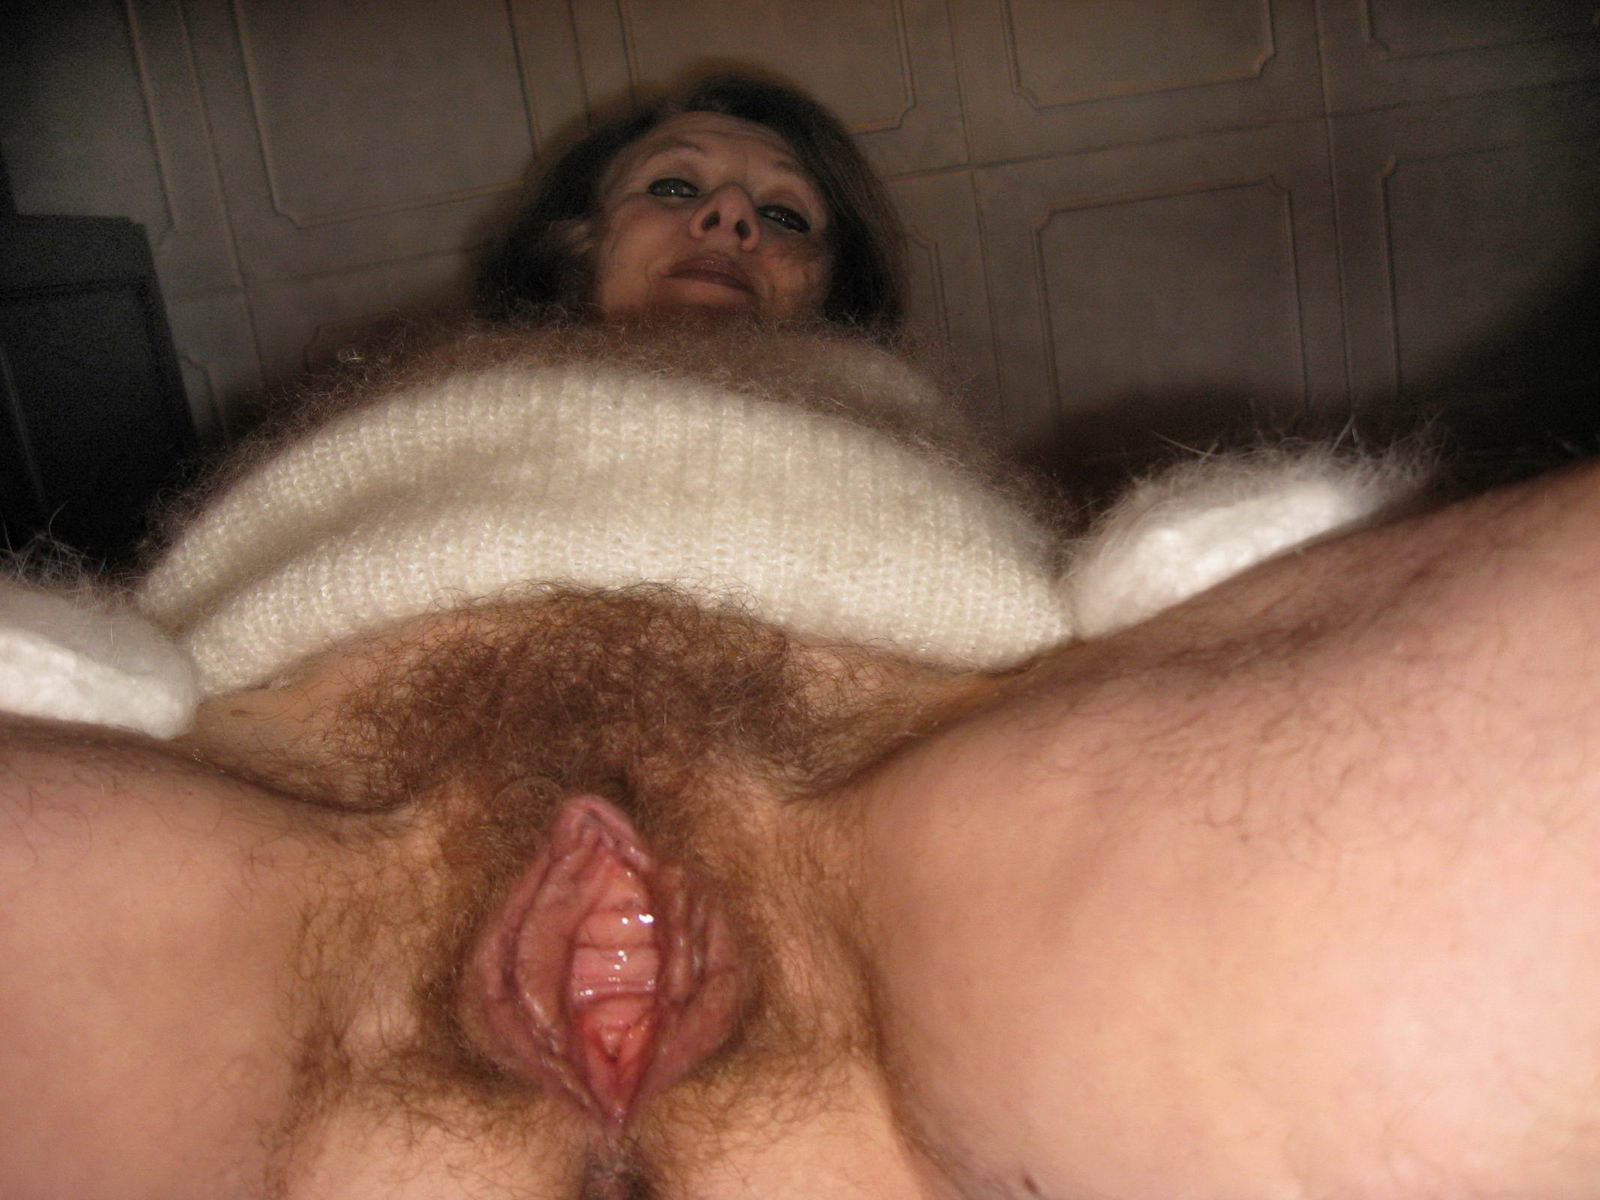 Daily new mature women smutfun